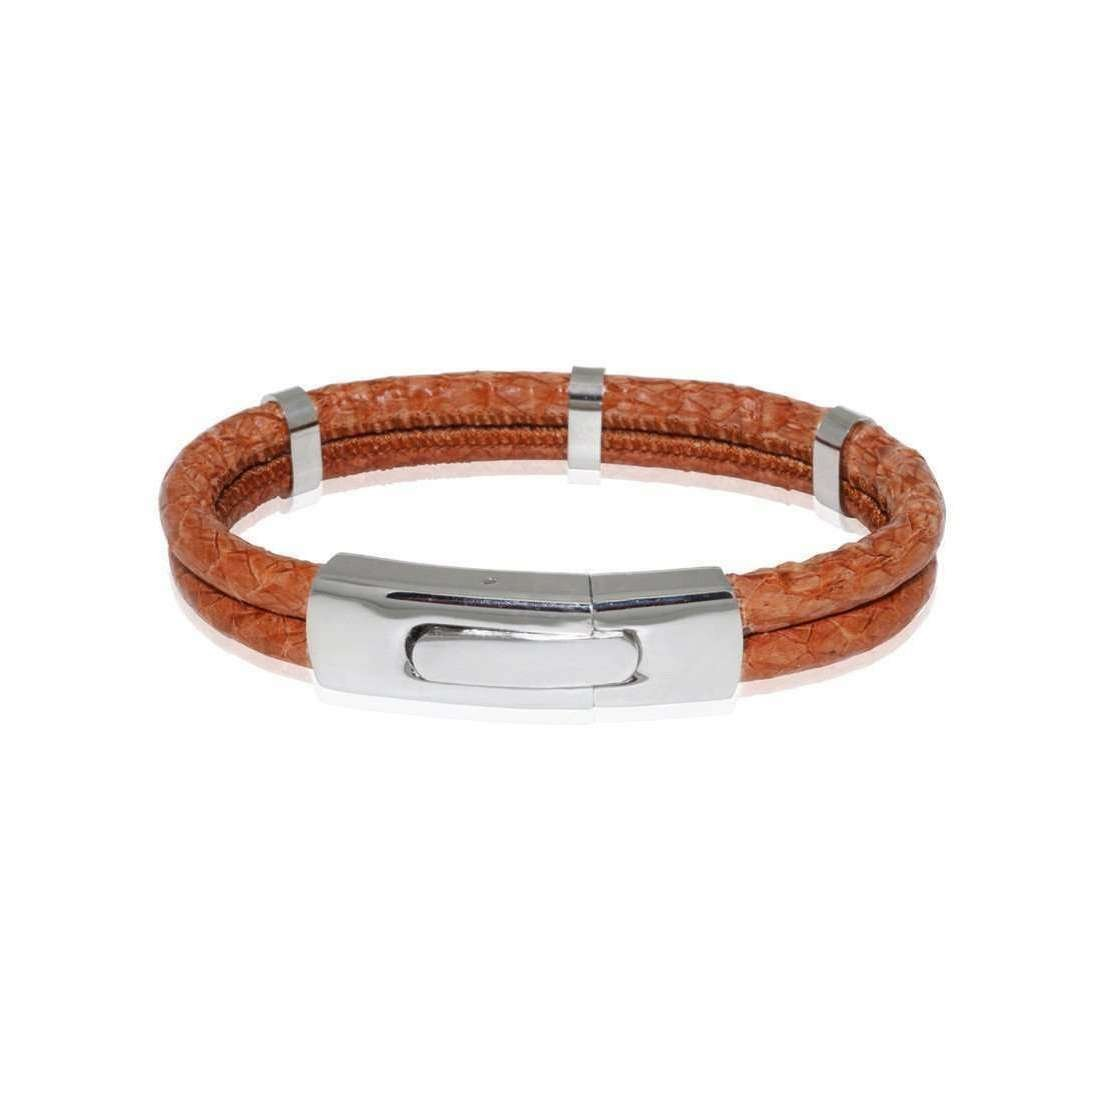 Cognac Atlantic Salmon Leather Stainless Steel Bracelet - Marlin Birna